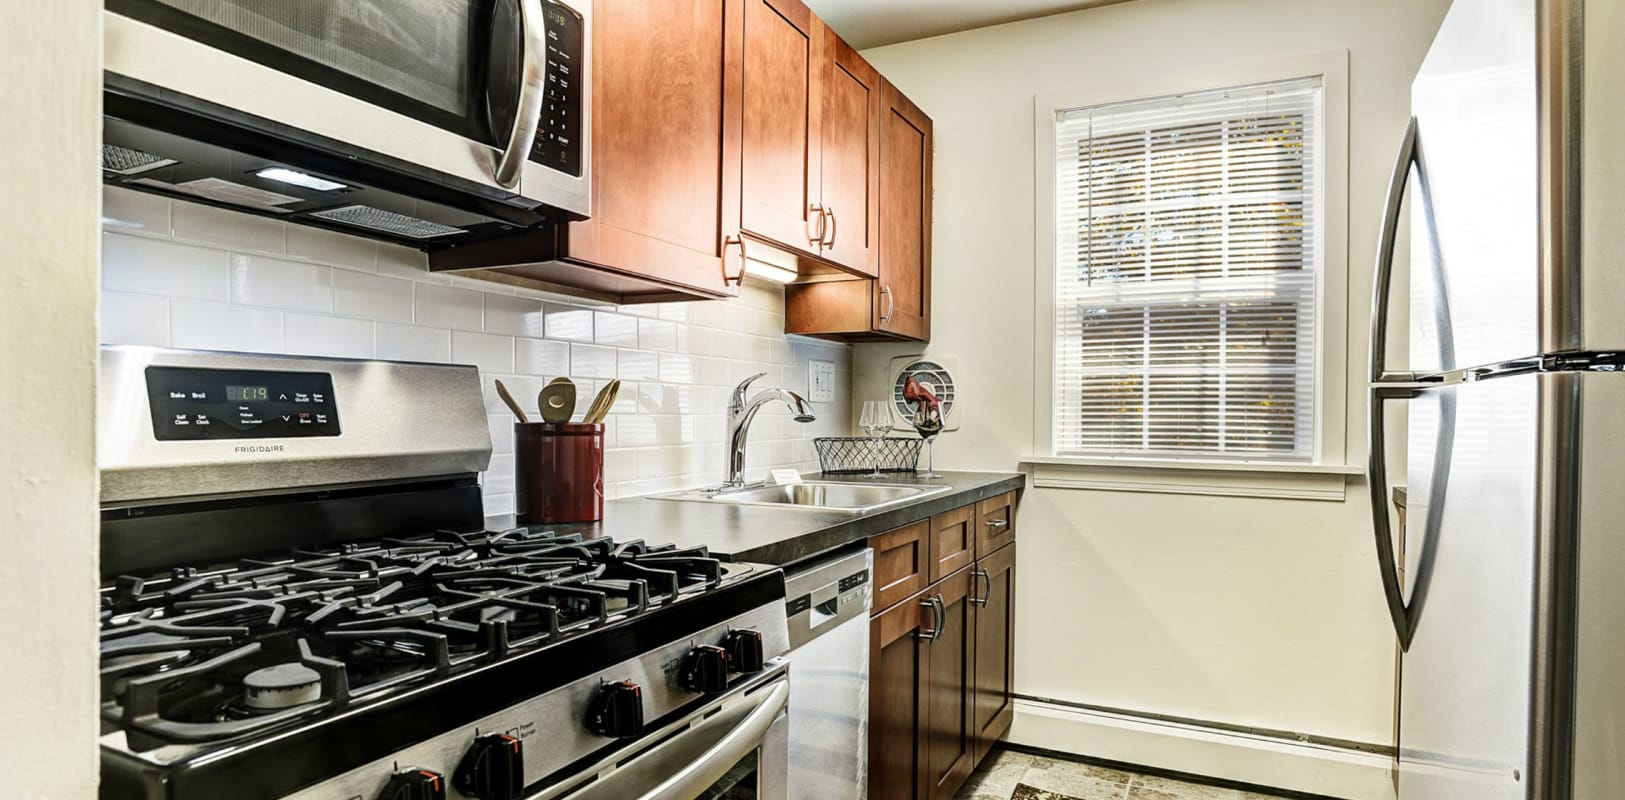 Kitchen with stainless steel appliances at Lehigh Plaza Apartments in Bethlehem, Pennsylvania